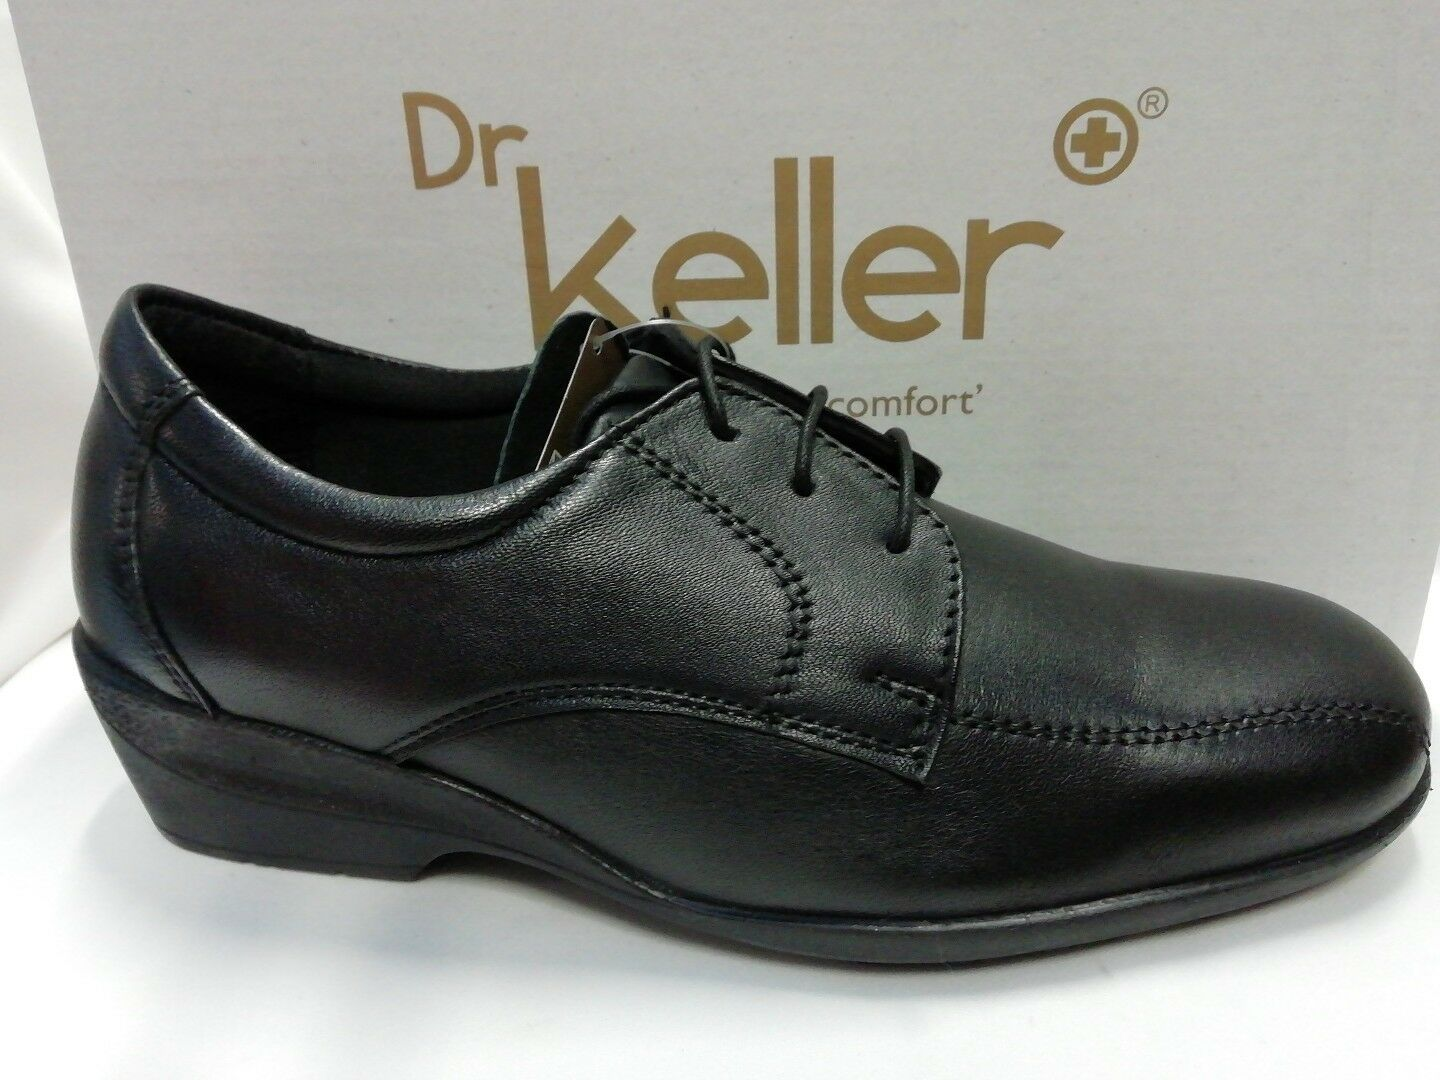 WOMENS LADIES DR KELLER BLACK LEATHER LACE UP COMFORT FIT CASUAL WORK SHOES NEW